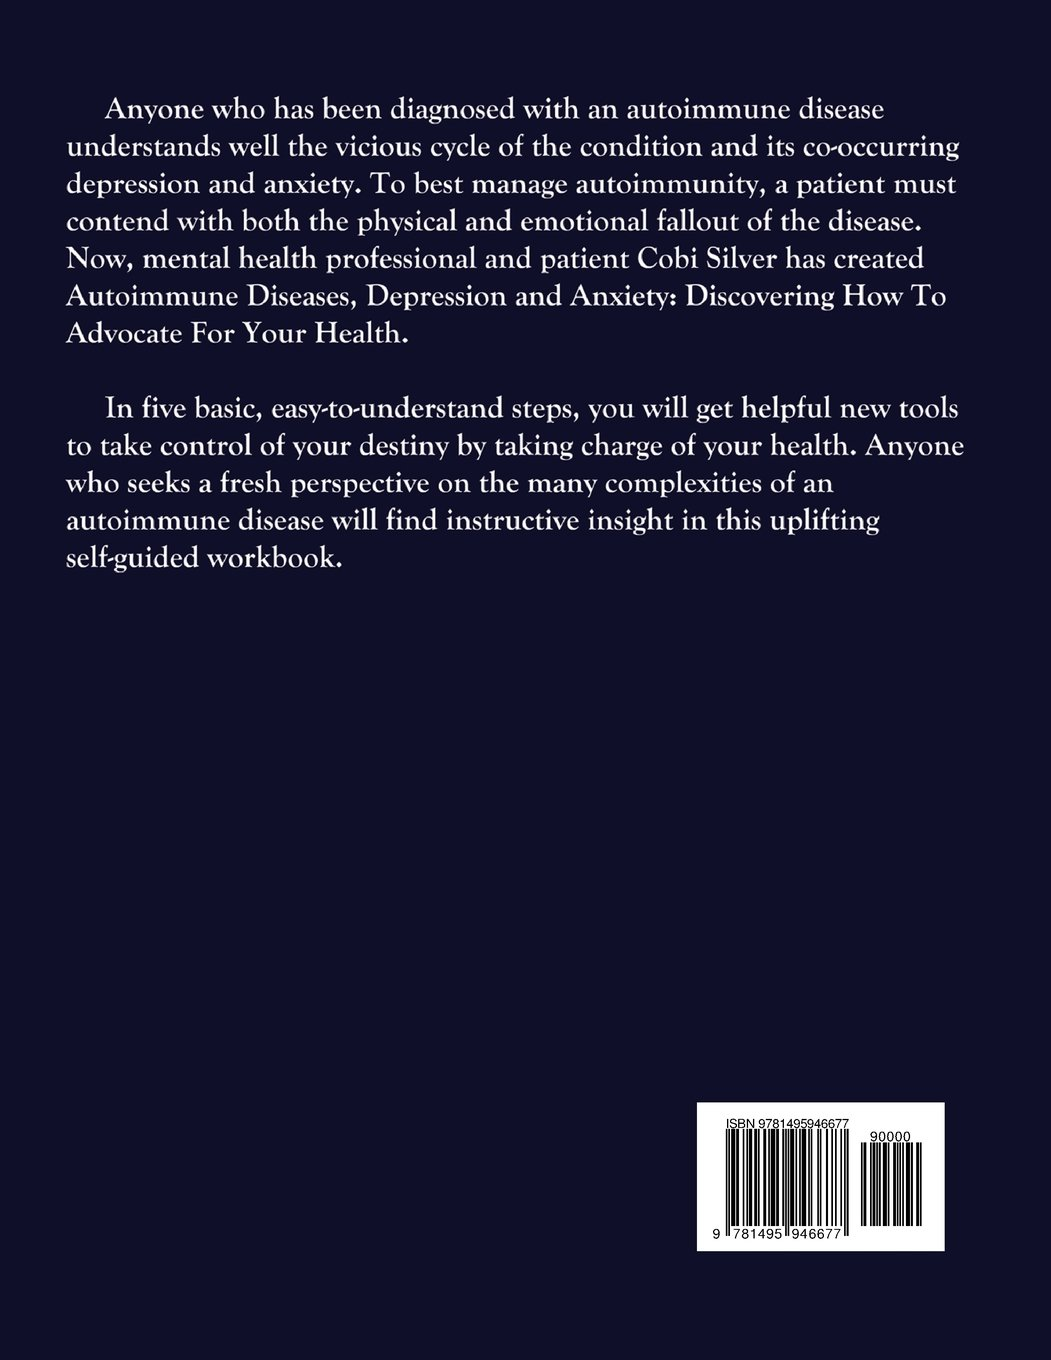 Workbooks best anxiety workbook : Autoimmune Diseases, Depression, and Anxiety: Discovering How To ...